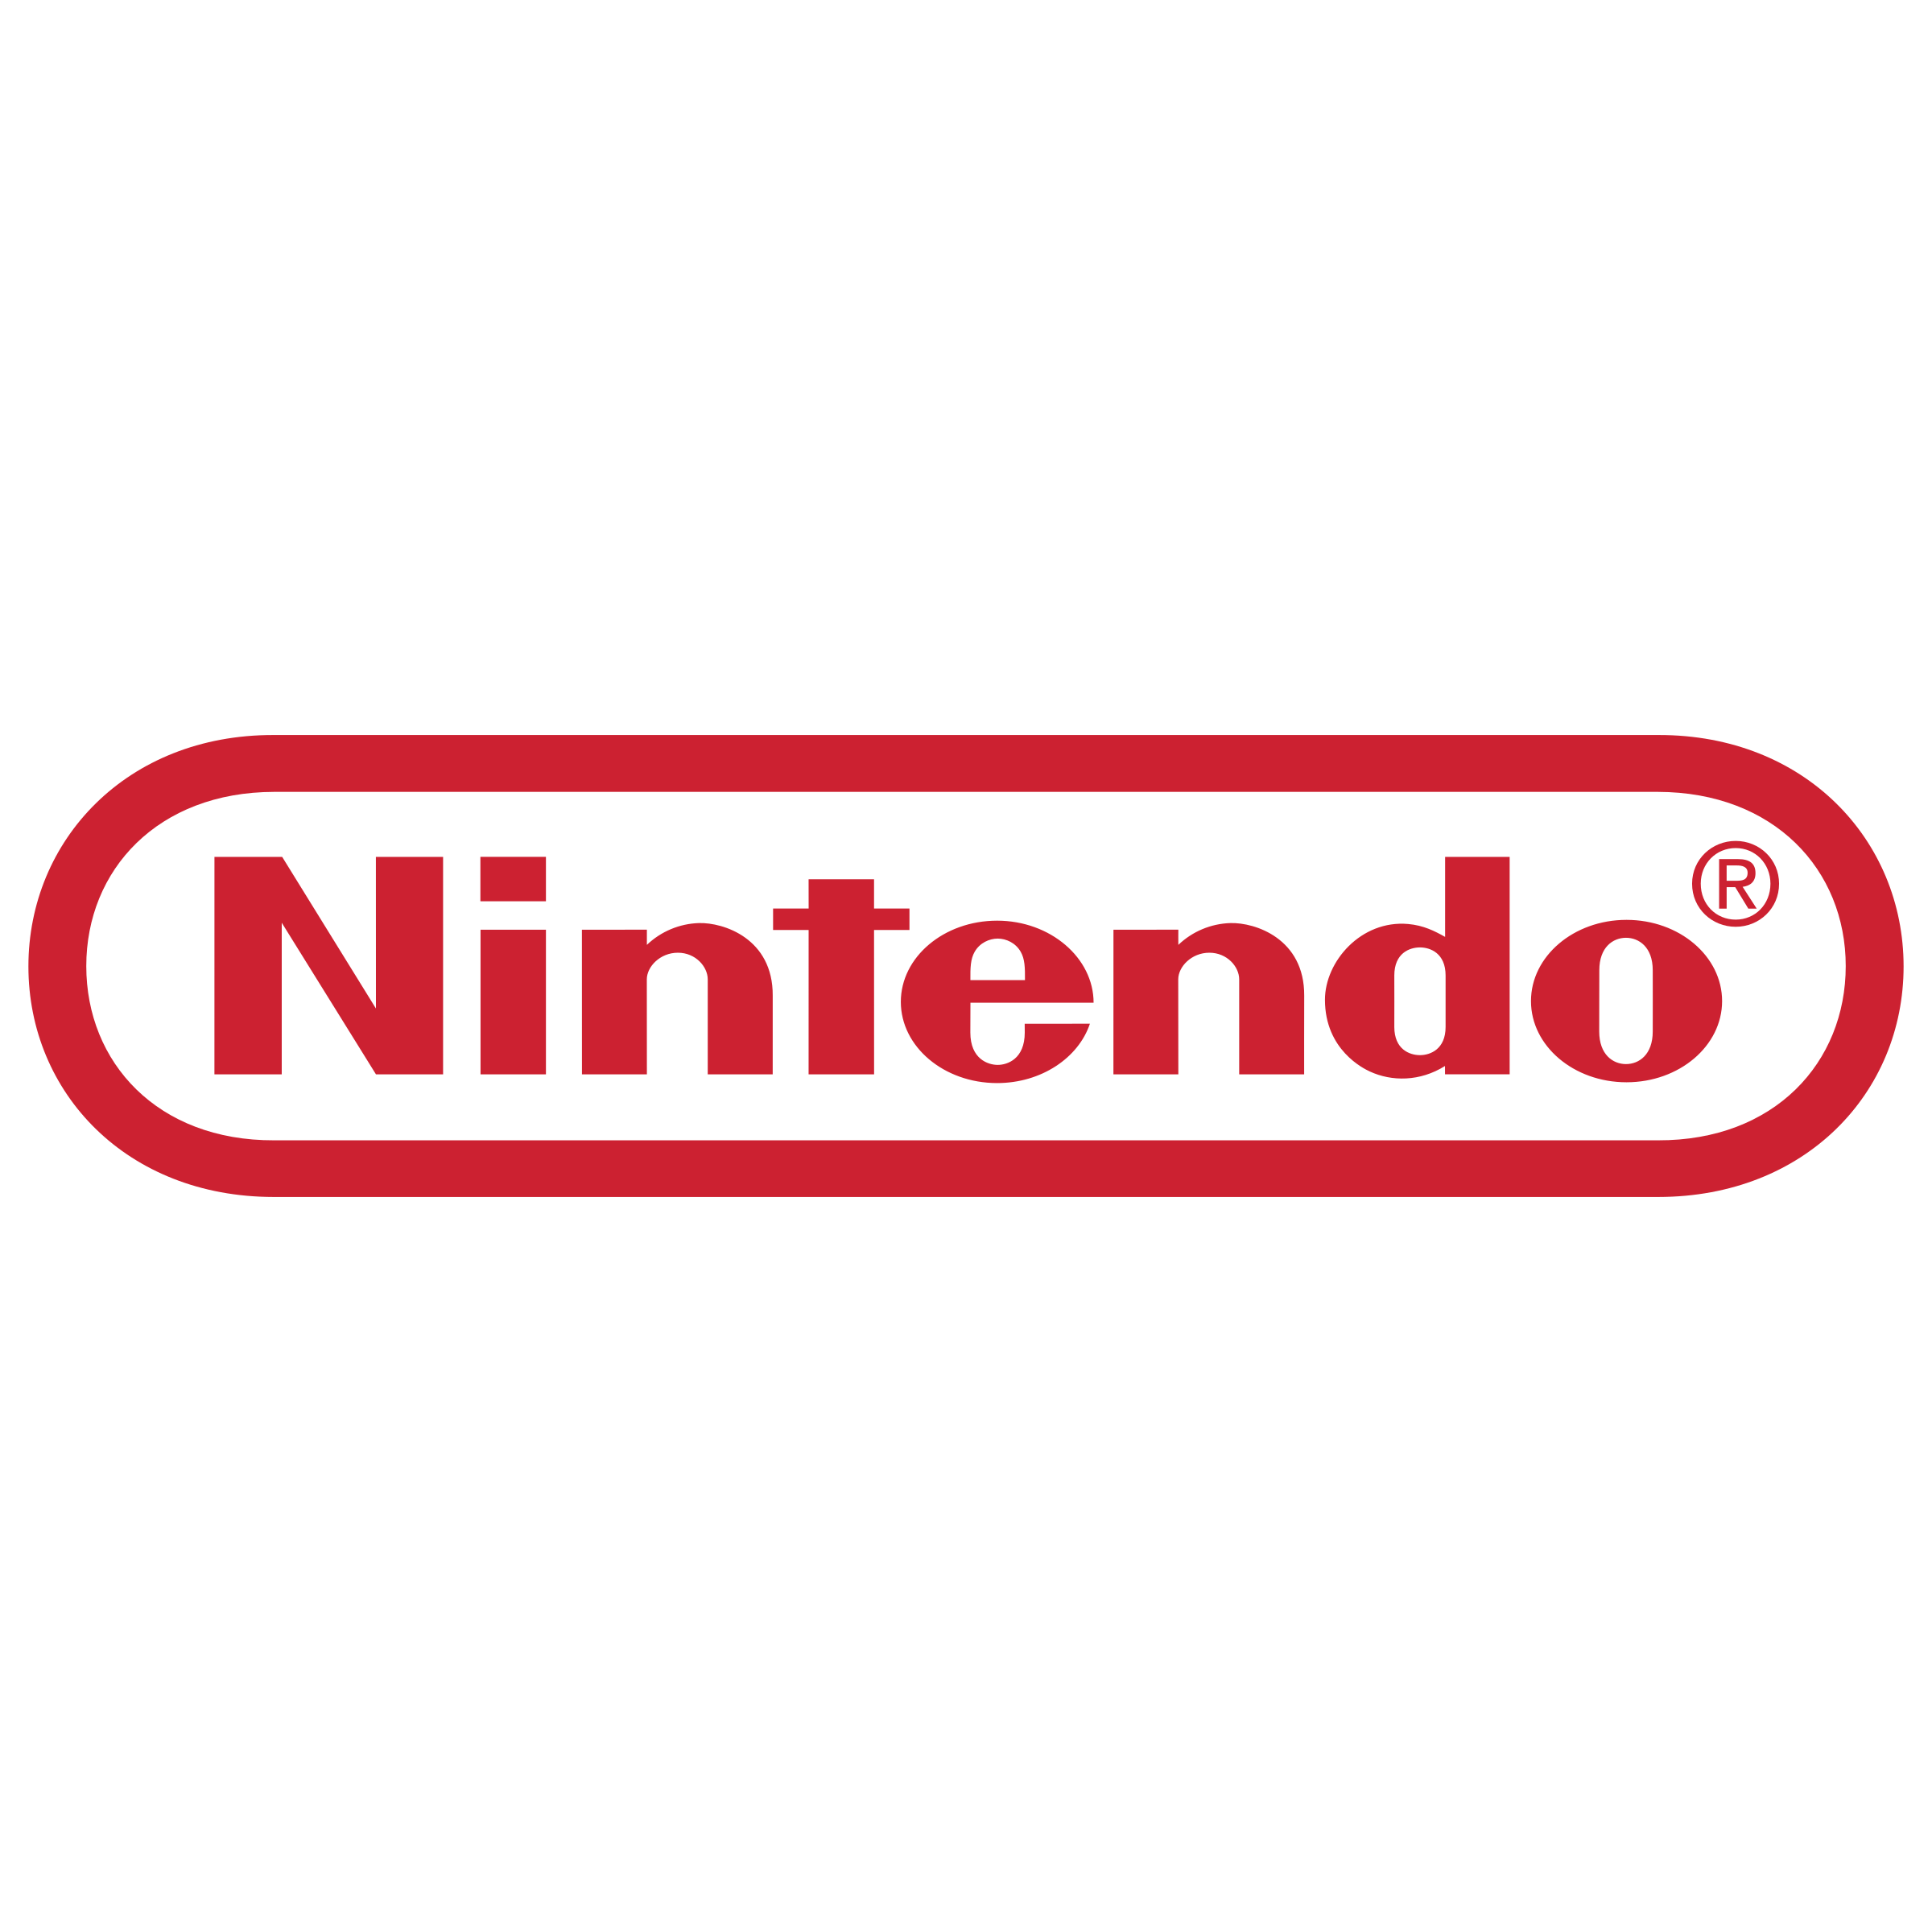 Nintendo logo png image. Transparent svg vector freebie